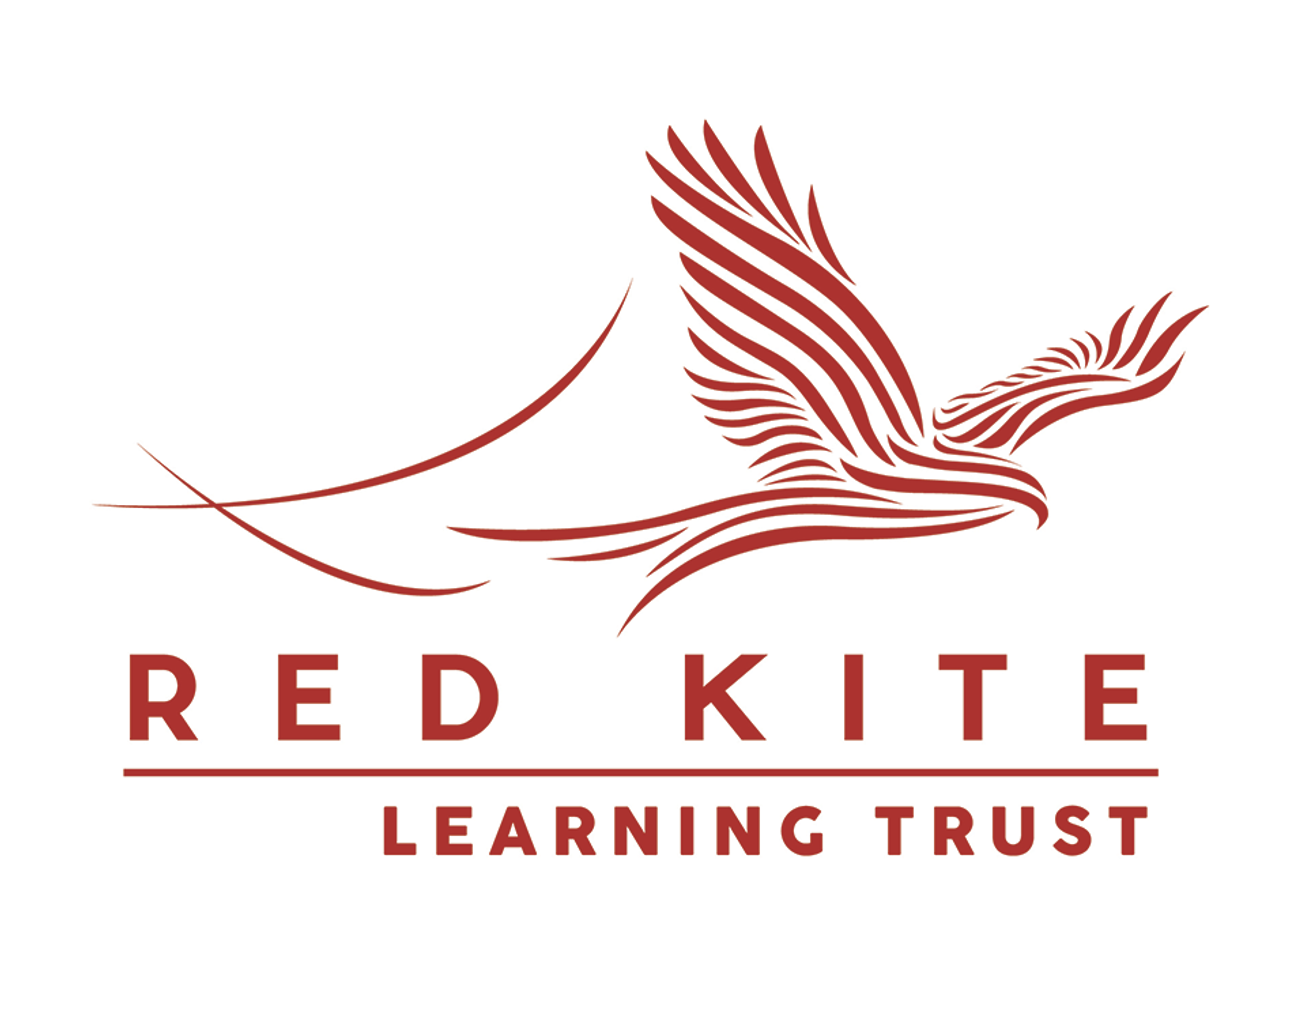 Risk Manager supports The Red Kite Learning Trust